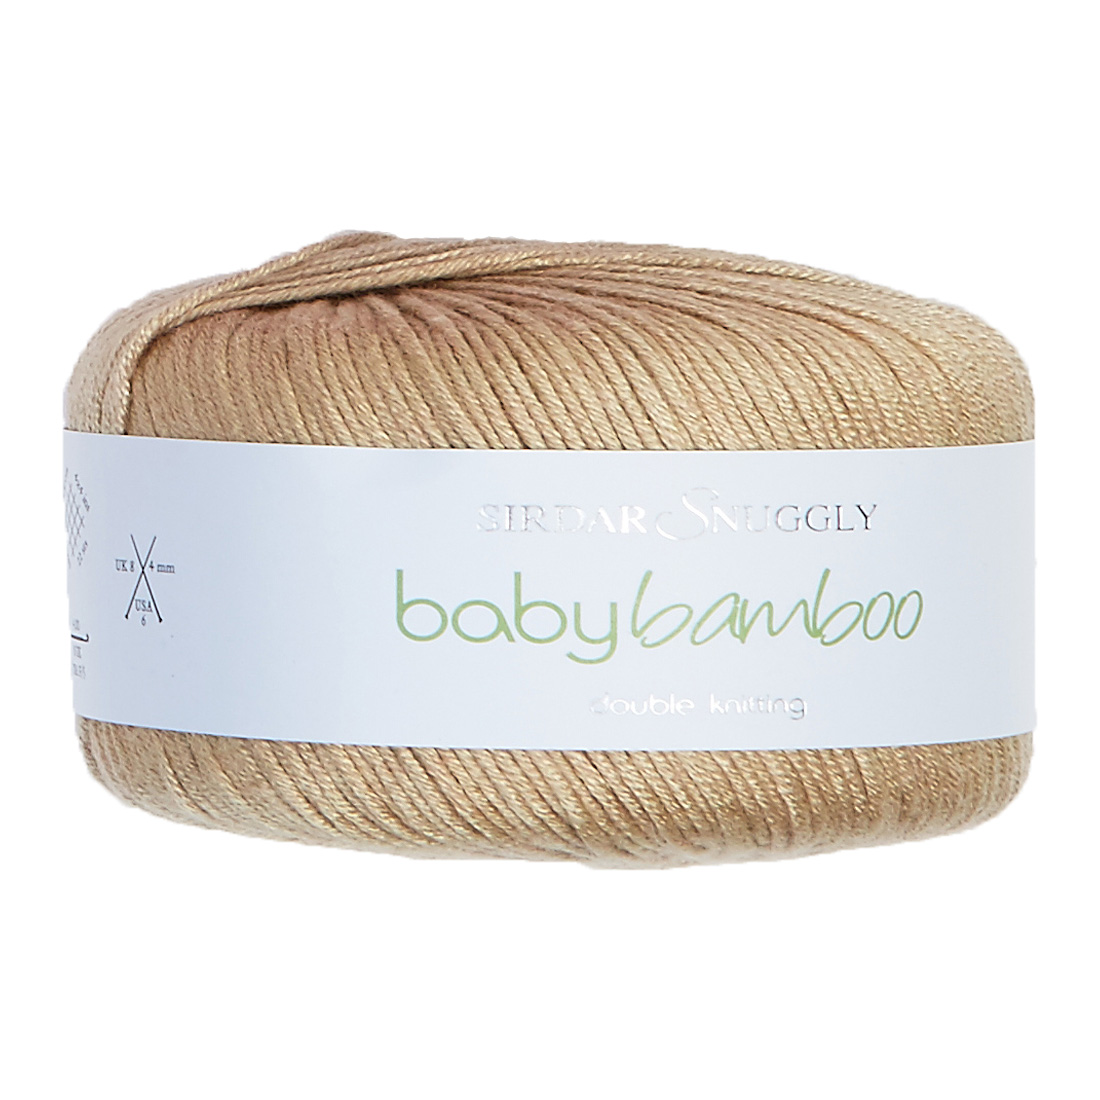 Sirdar Snuggly Baby Bamboo 50g 097